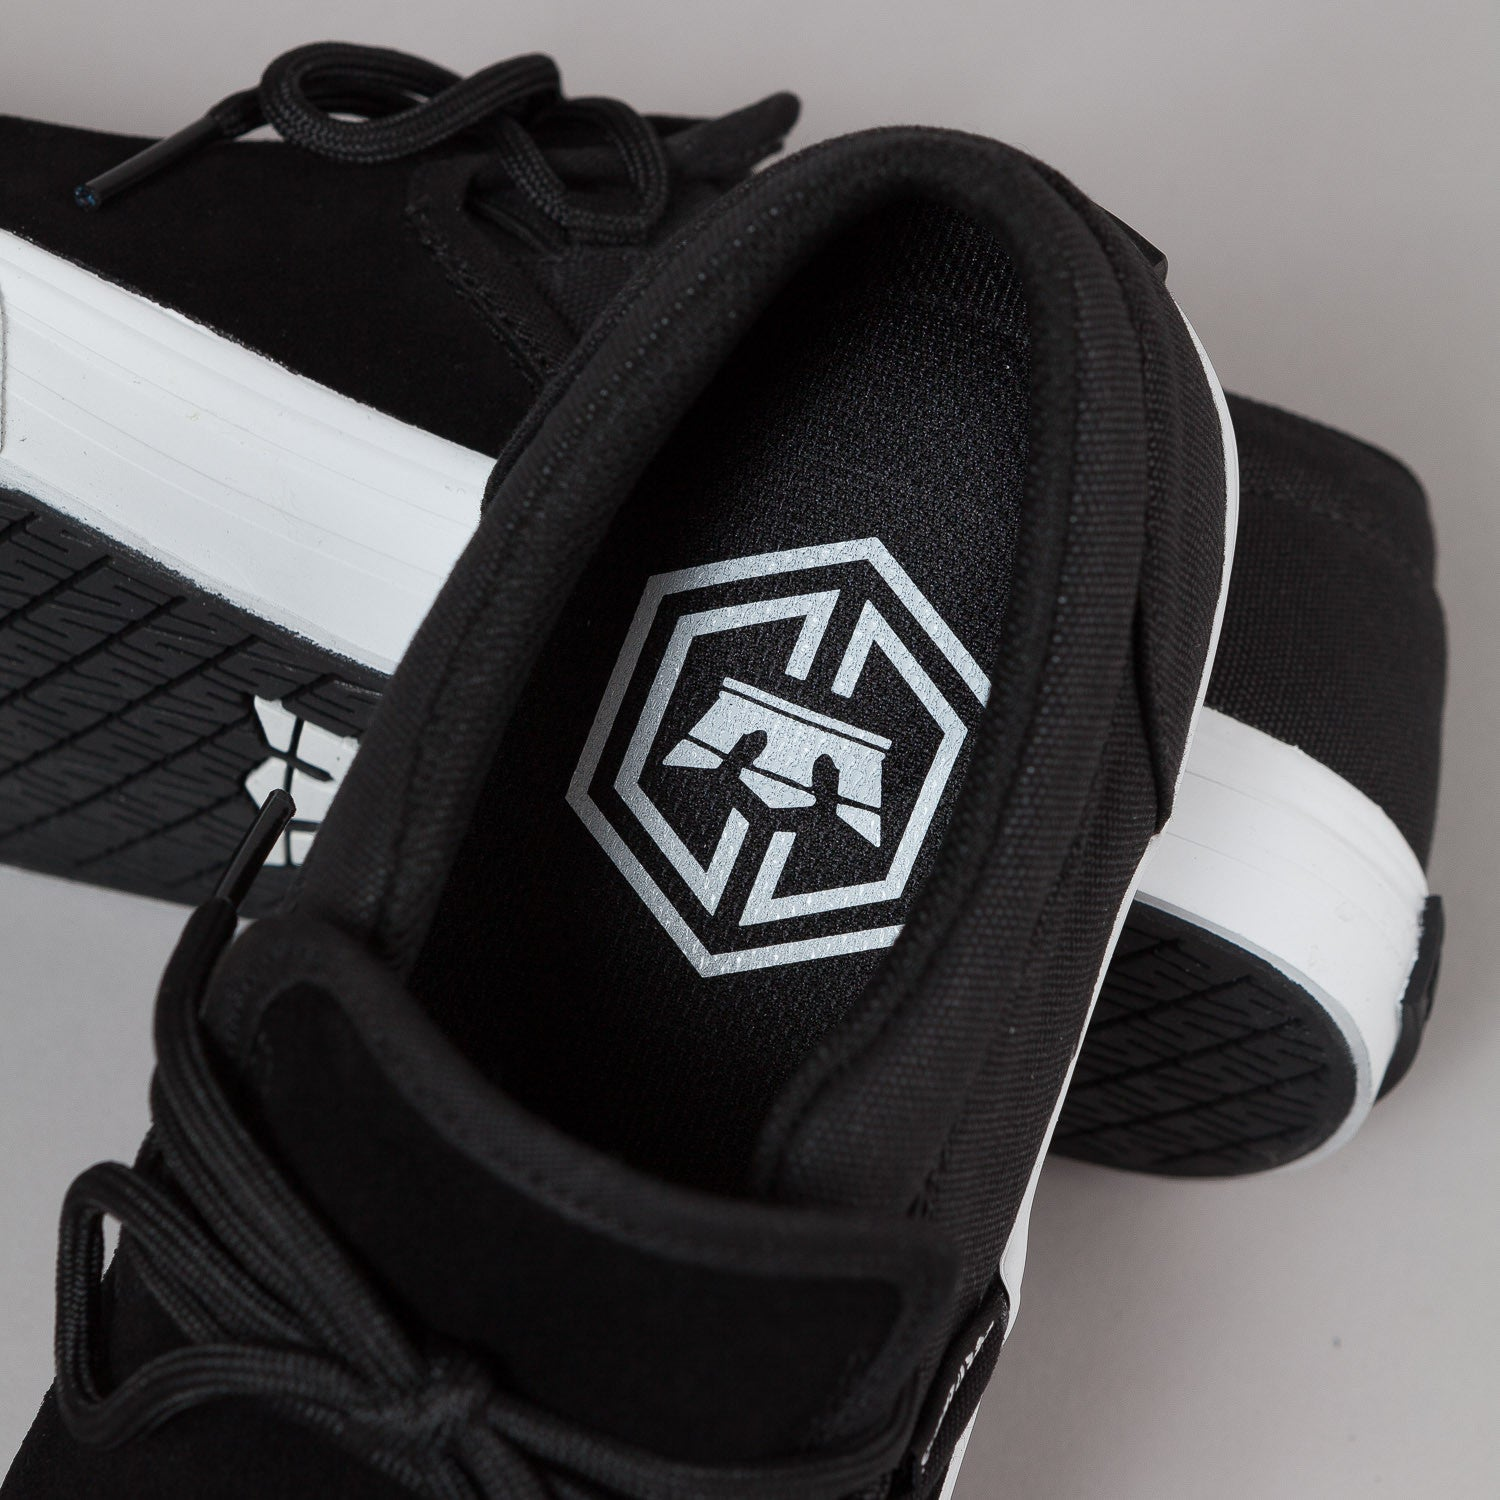 Supra Cuba Shoes - Black / White